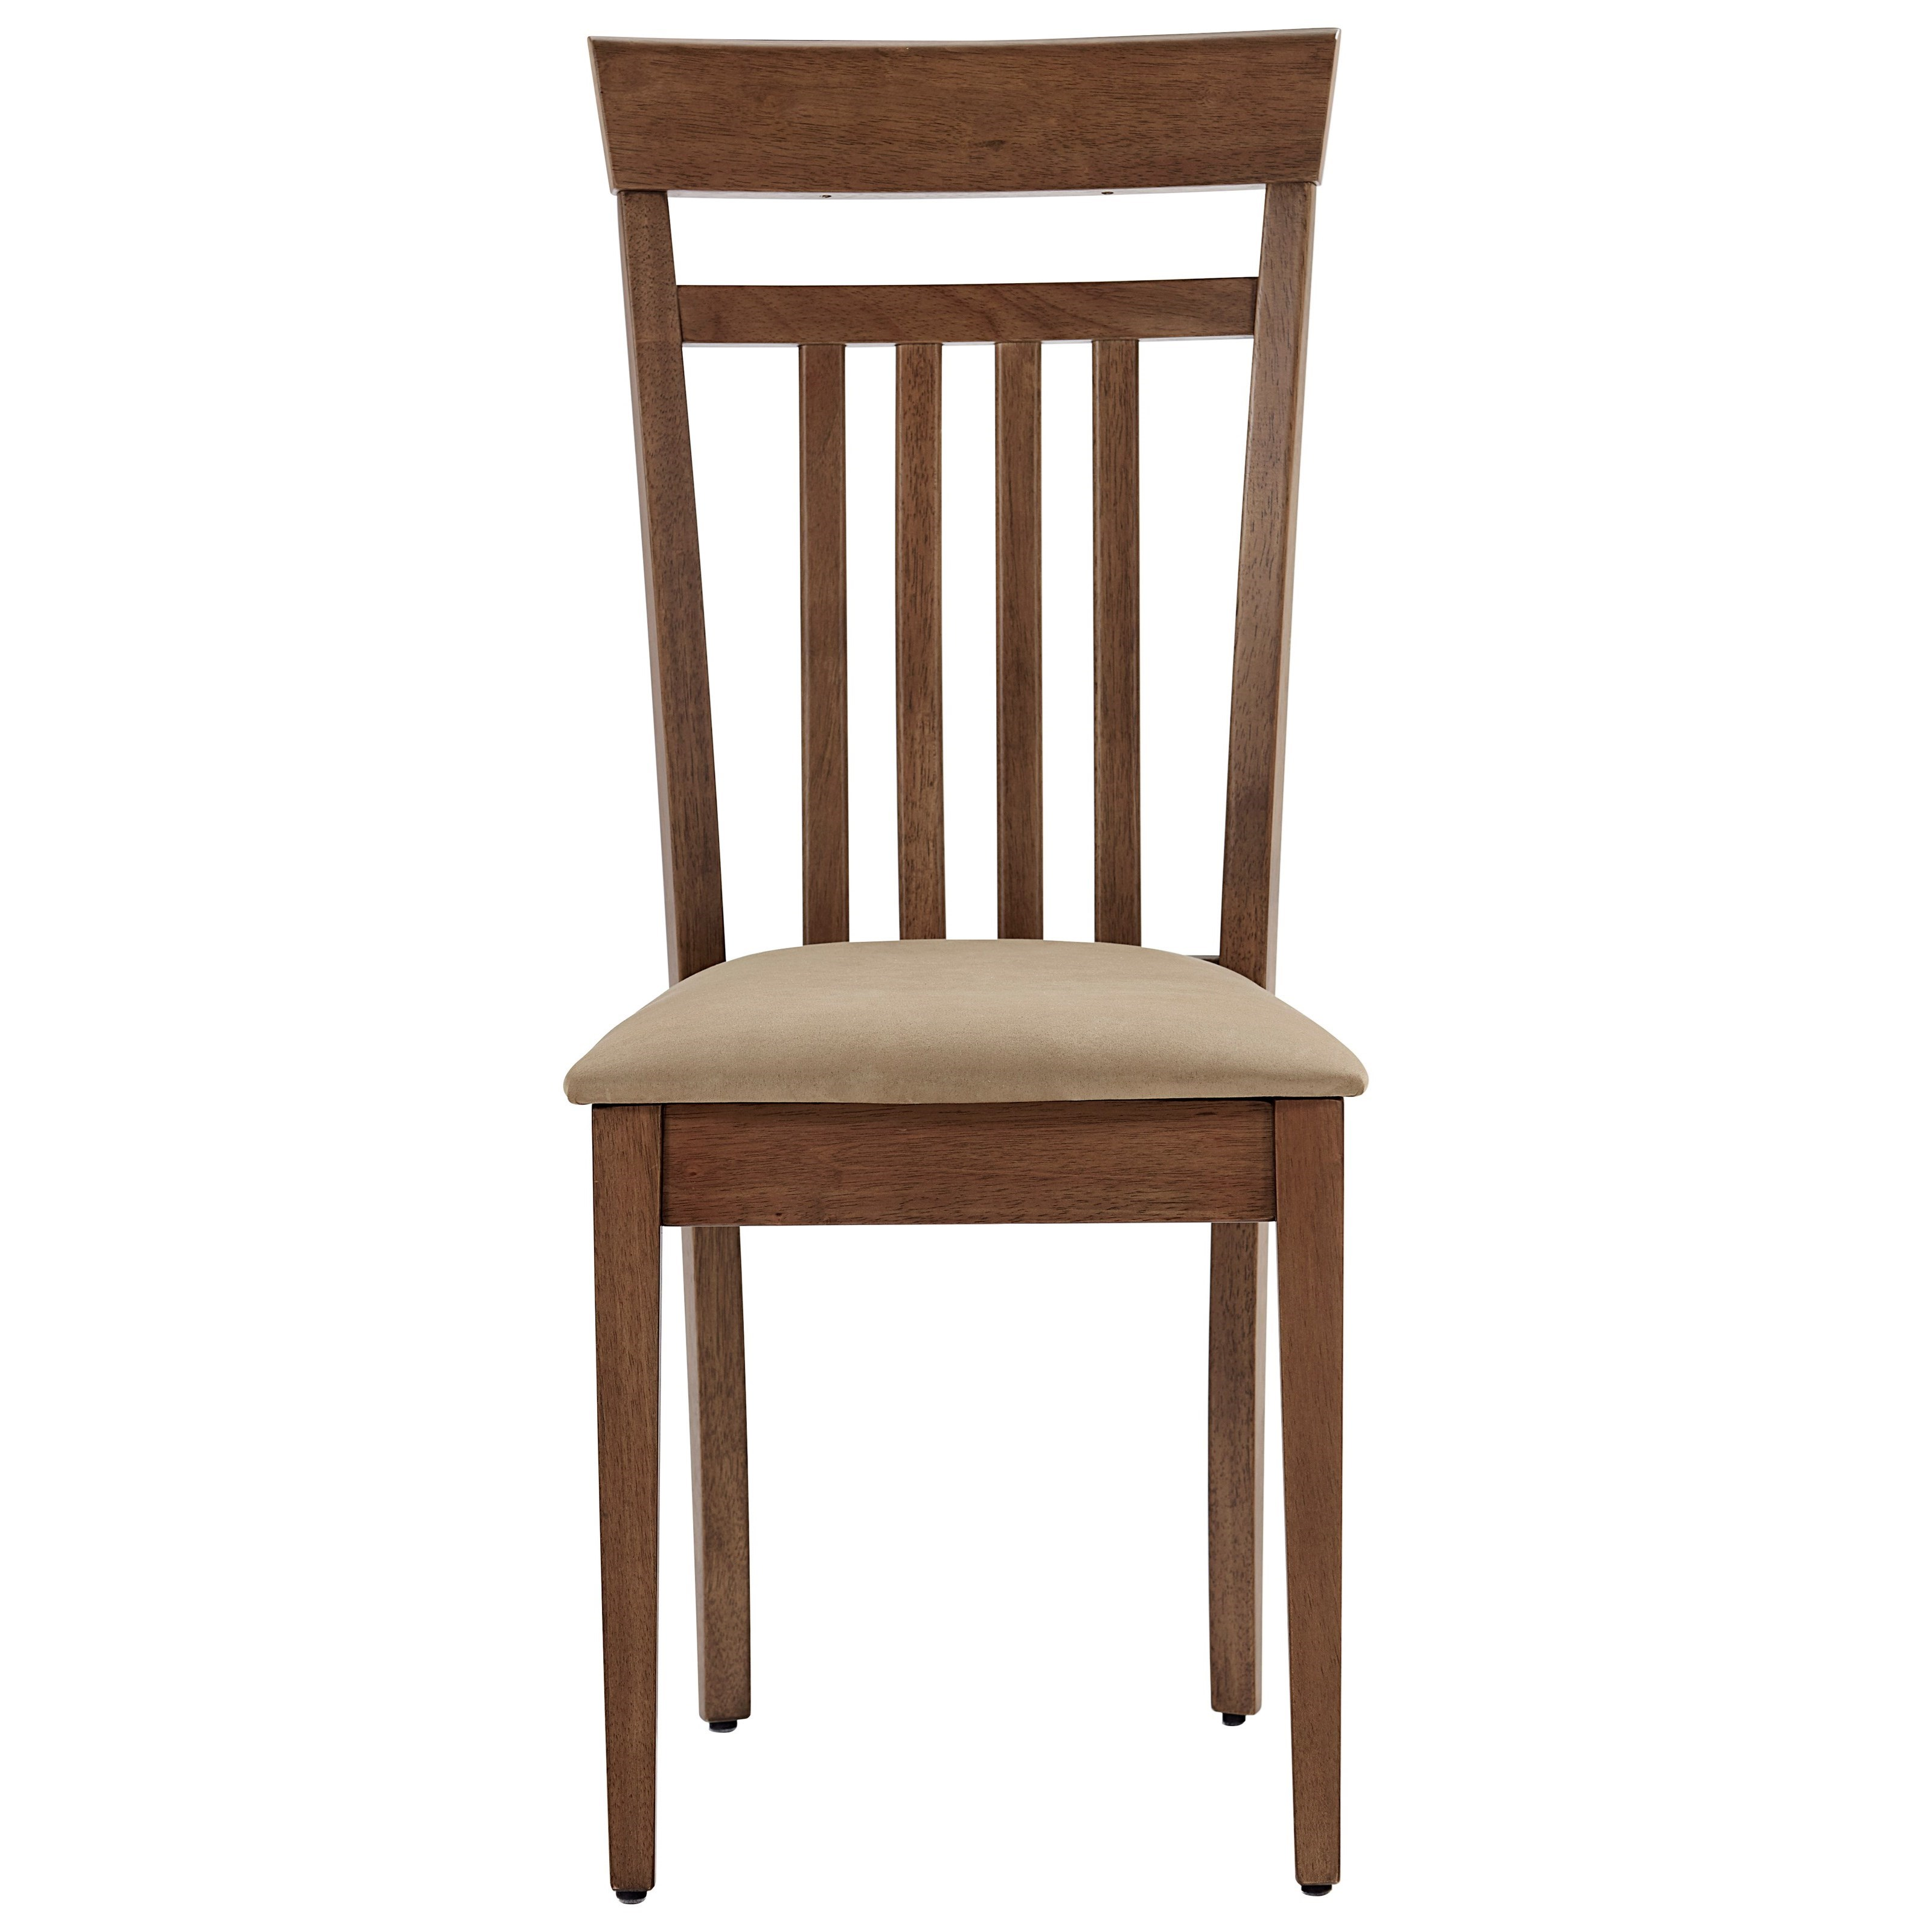 Palmer Upholstered Dining Side Chair by Progressive Furniture at Catalog Outlet